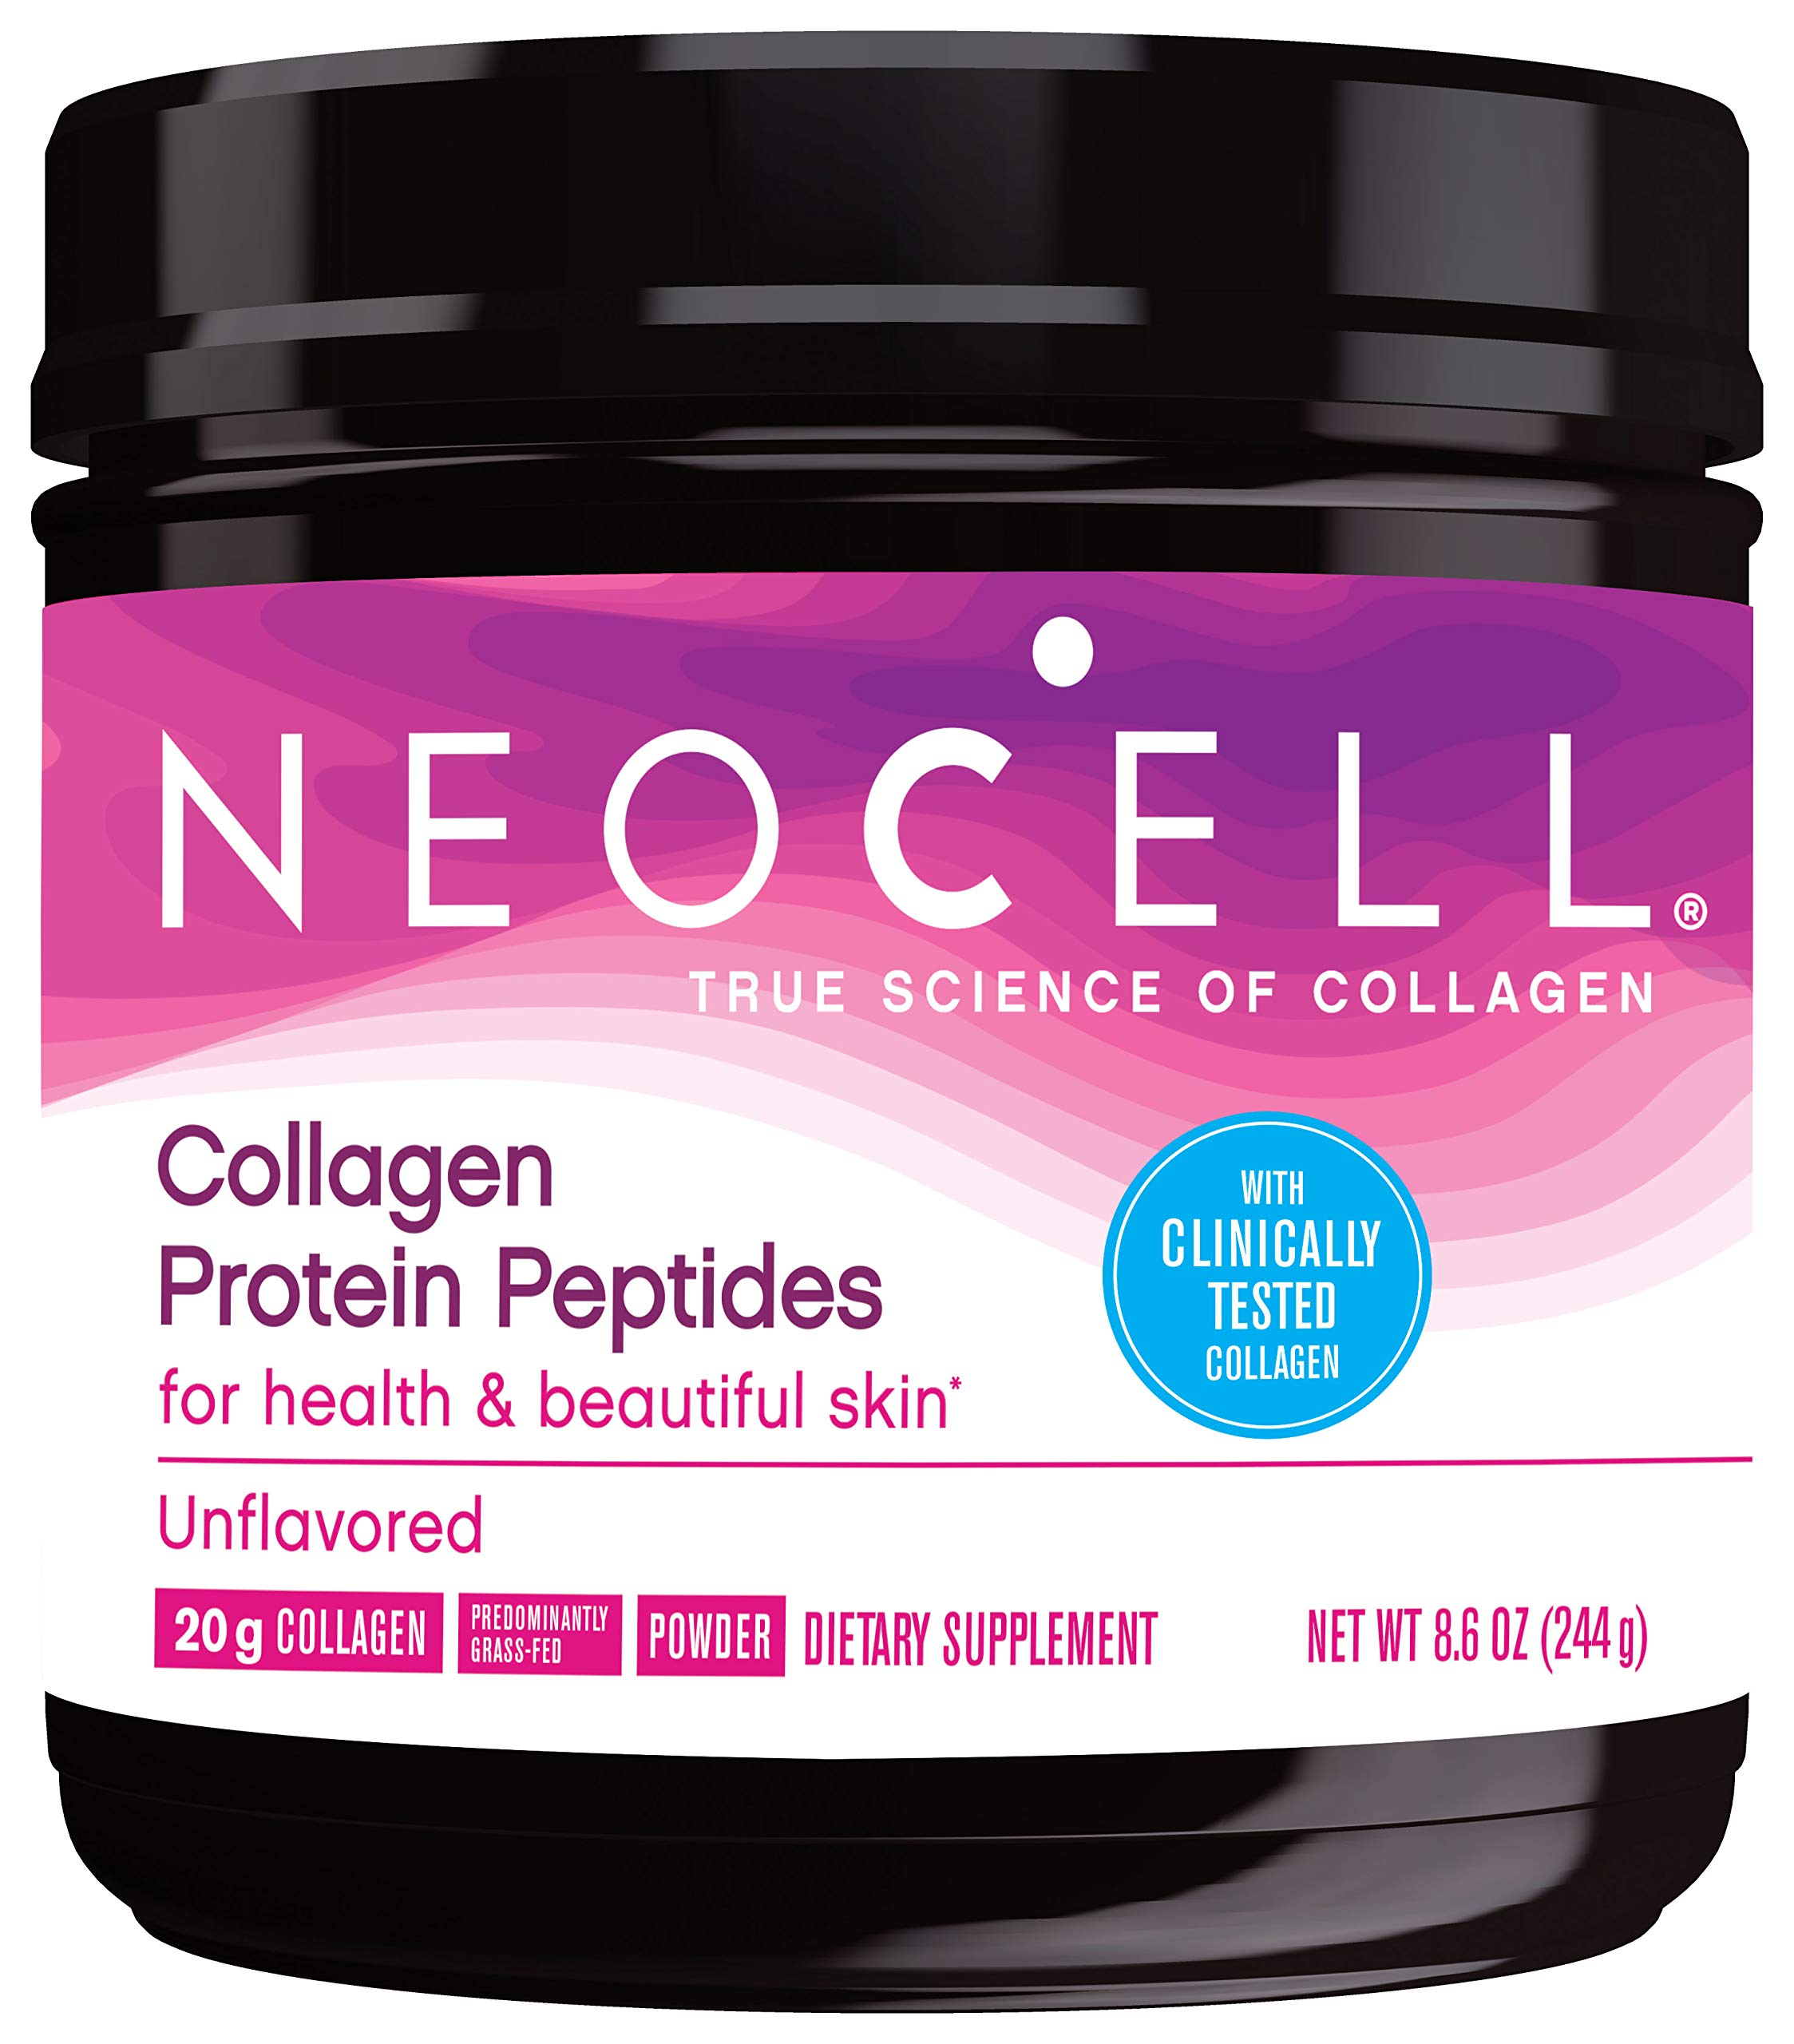 Neocell Collagen Protein Peptides – for Heathy & Beautiful Skin (Unflavored, 12 Servings)